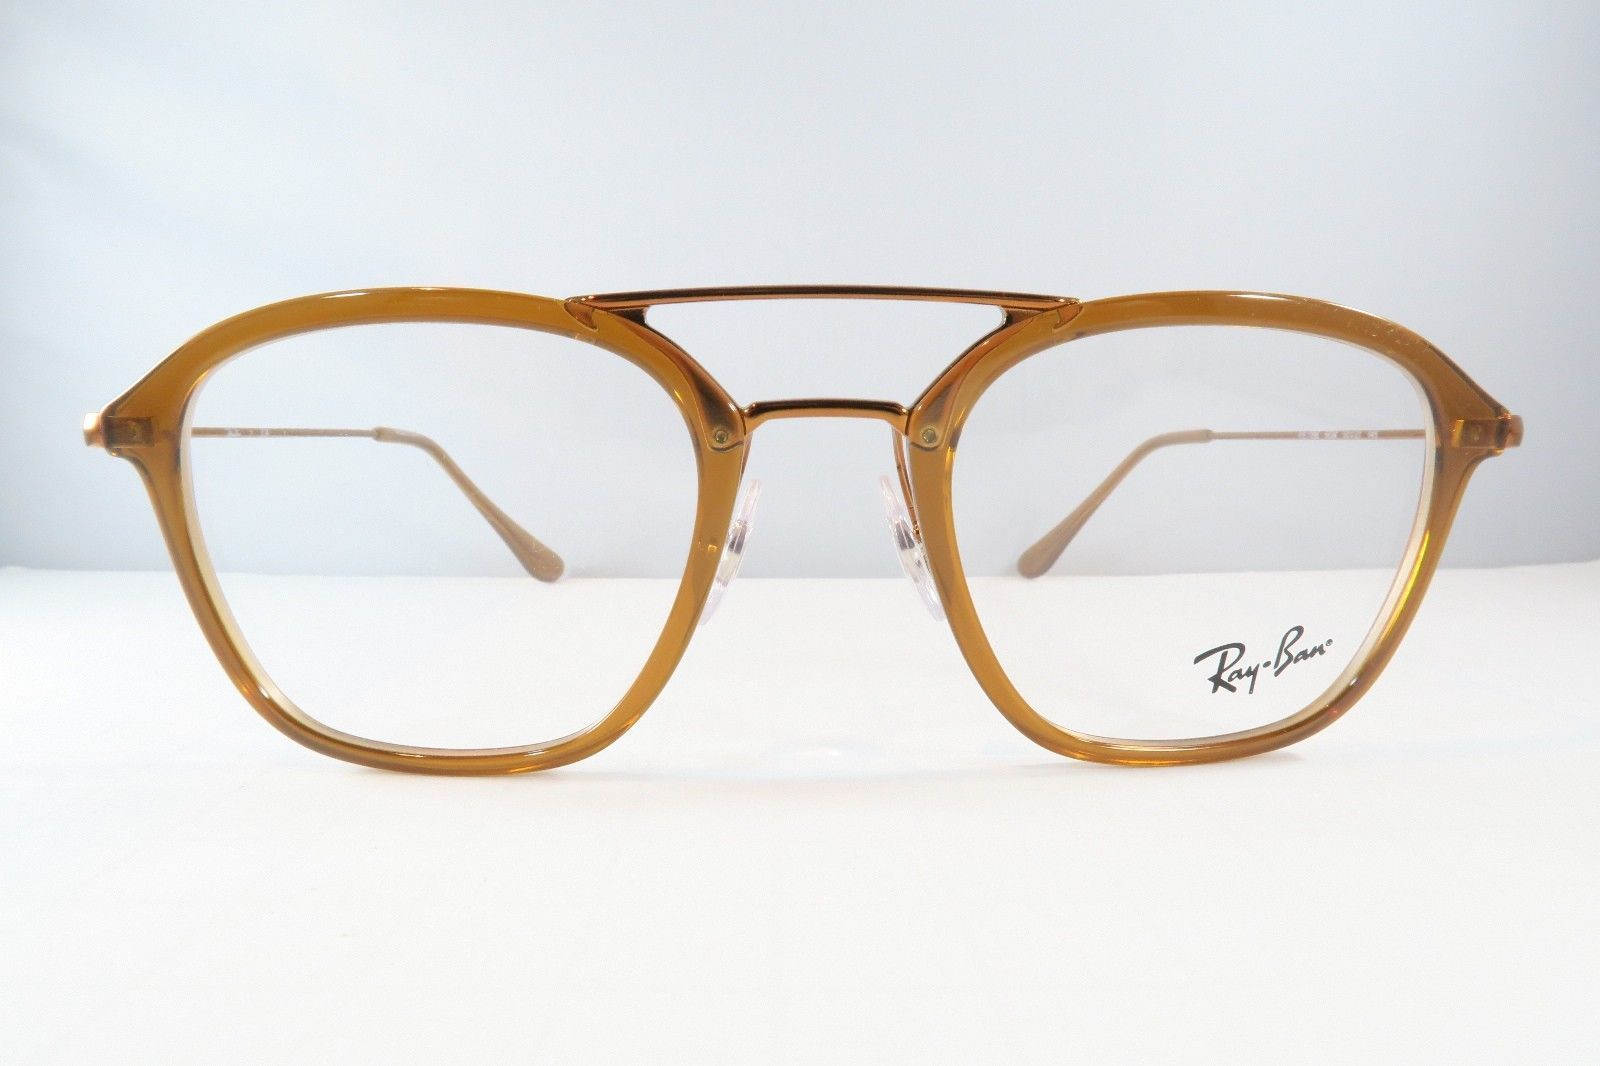 Ray Ban Eyeglass Frames: 5 listings